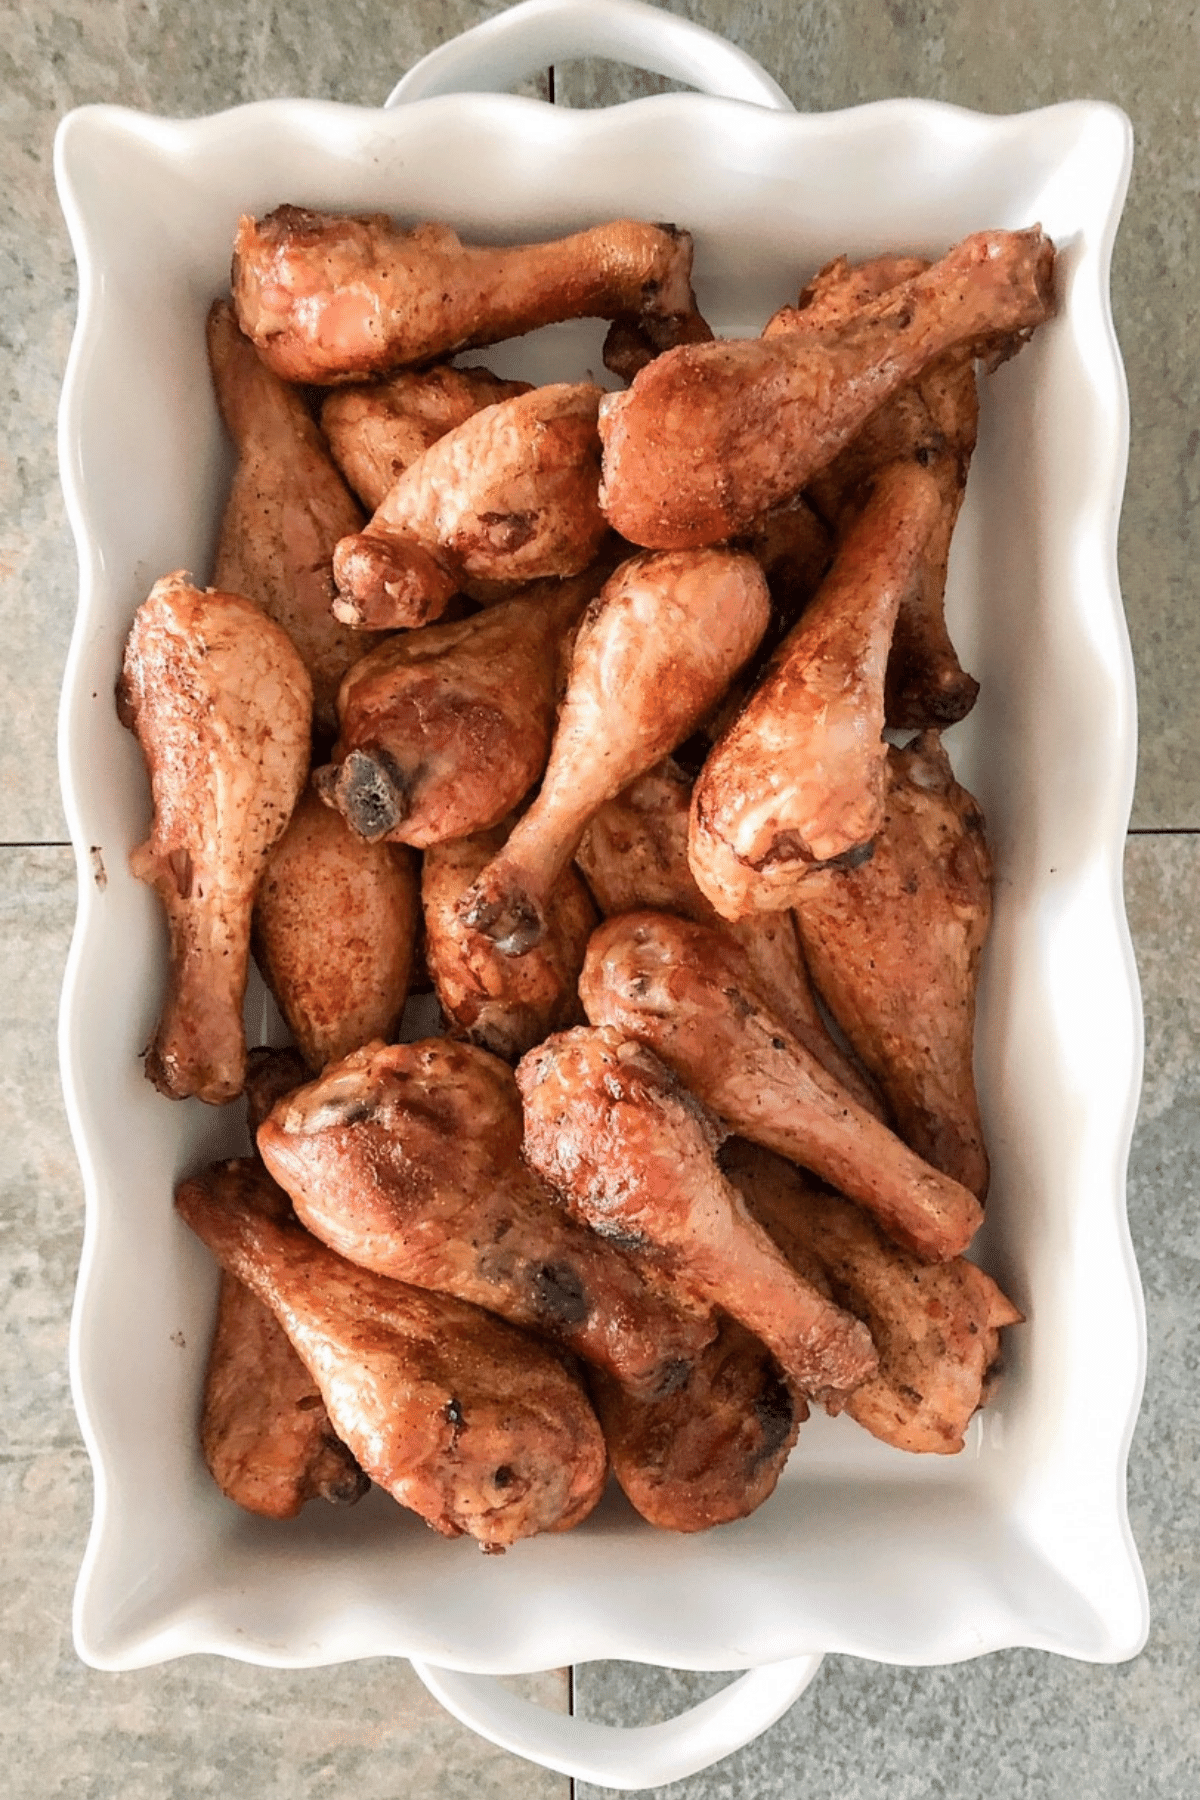 Smoked chicken legs in a large white baking tray